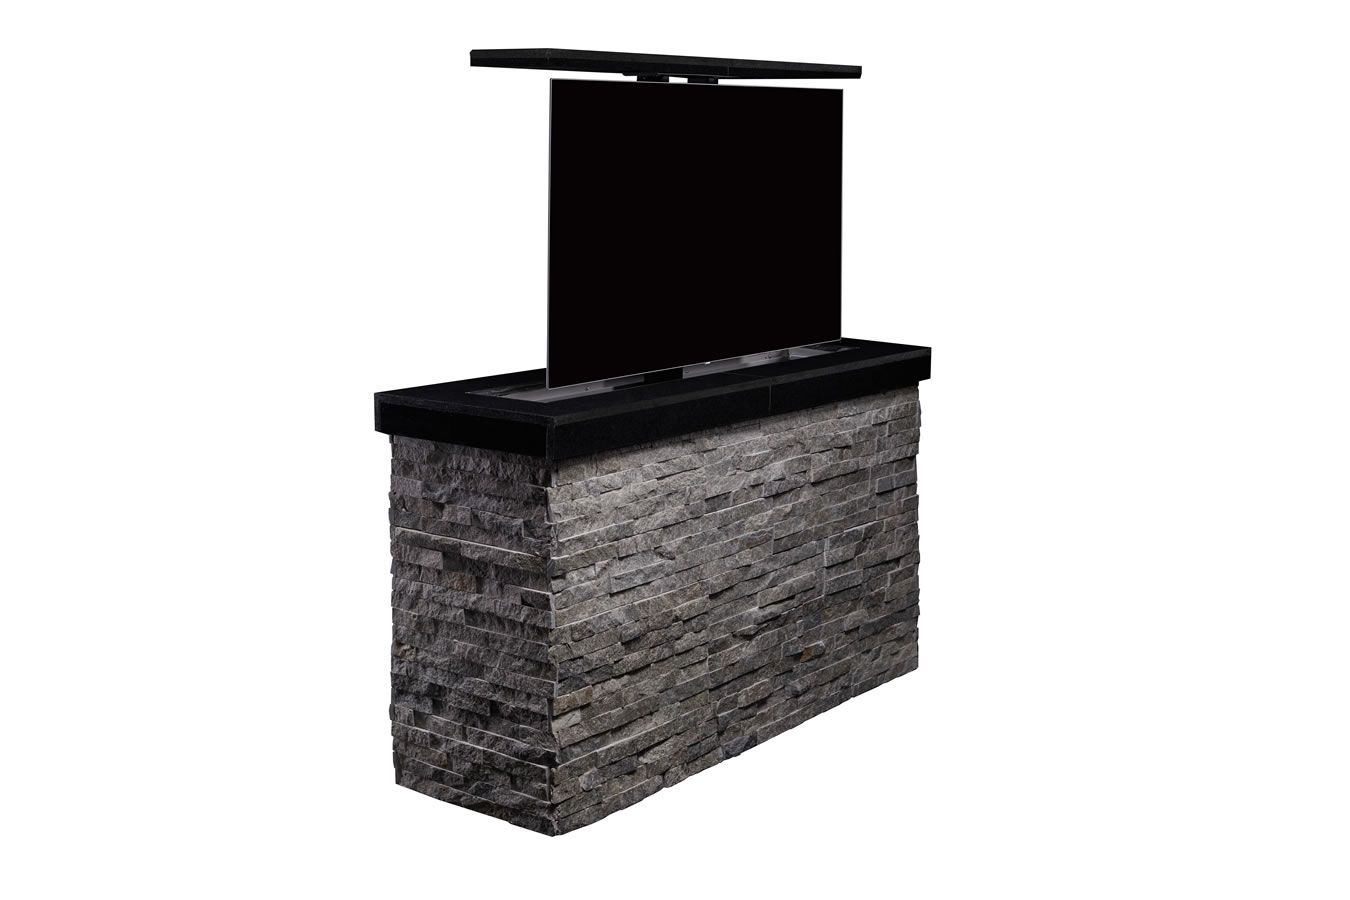 Cabinet Tronix Outdoor Hidden Tv Lift Furniture Island Protects 55 Inch Tv And Hides It Away In Rancho Santa Fe B Tv Lift Cabinet Outdoor Tv Cabinet Outdoor Tv